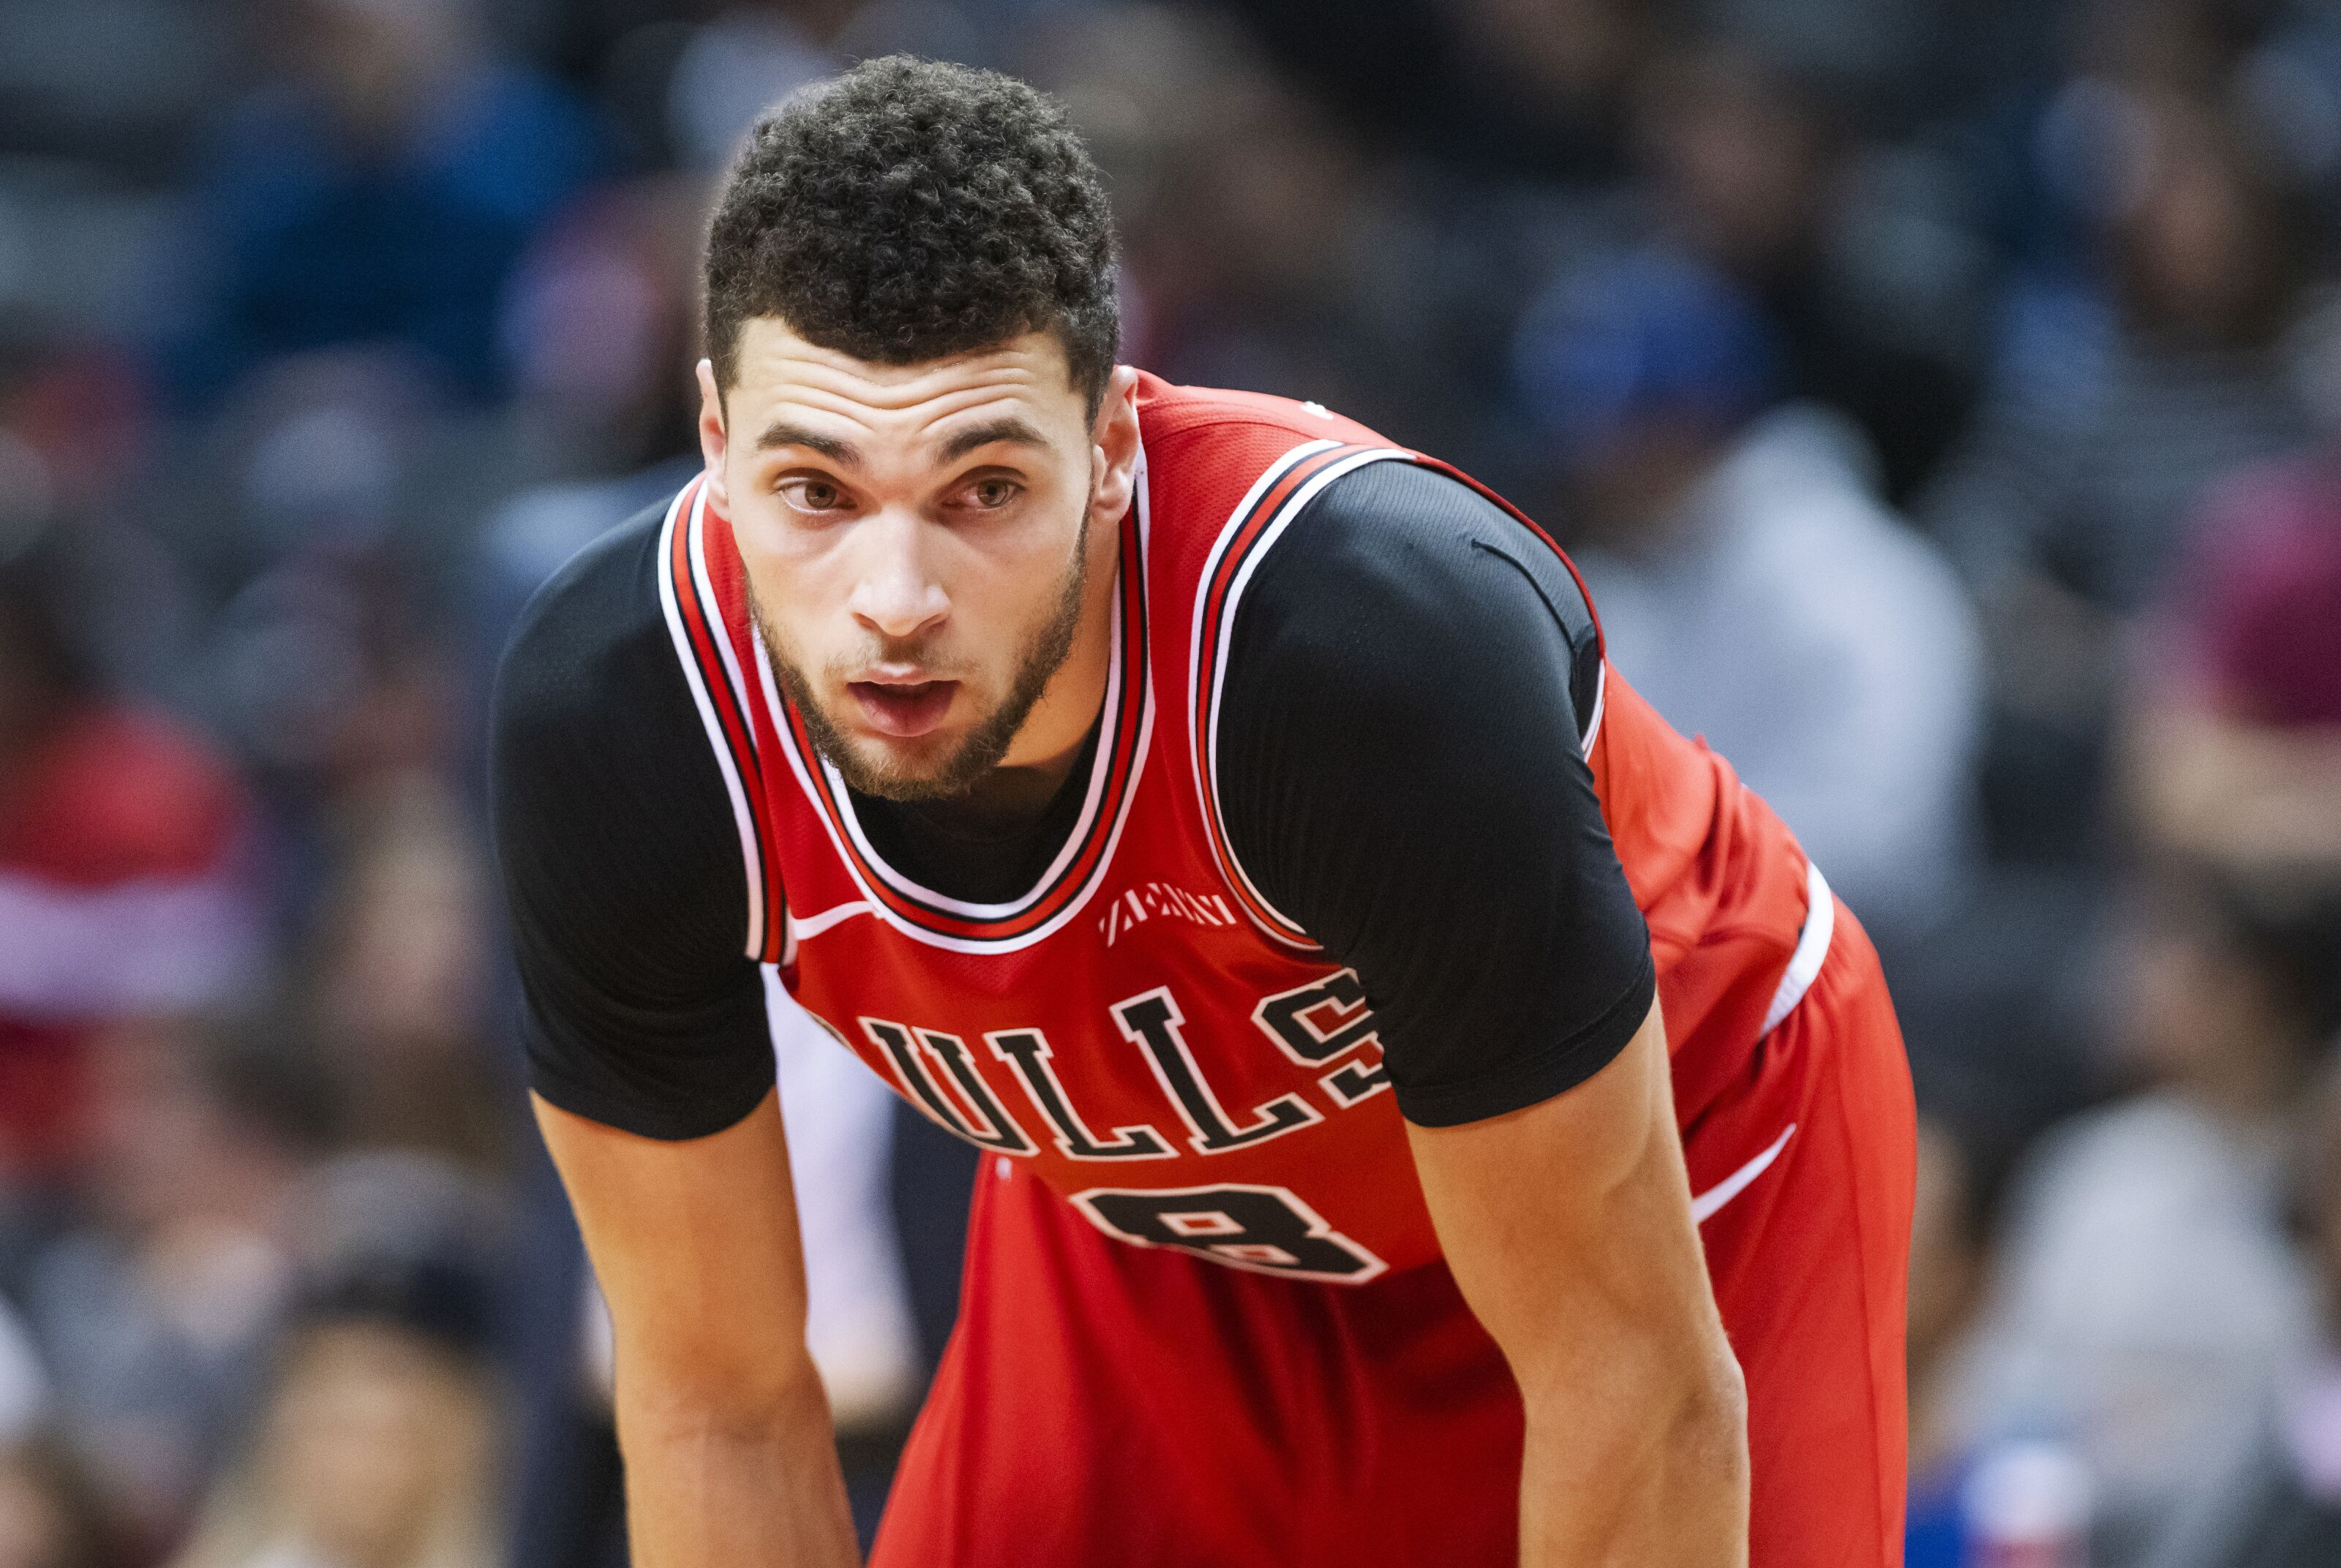 Chicago Bulls: Zach LaVine wickedly underrated by NBA executives survey